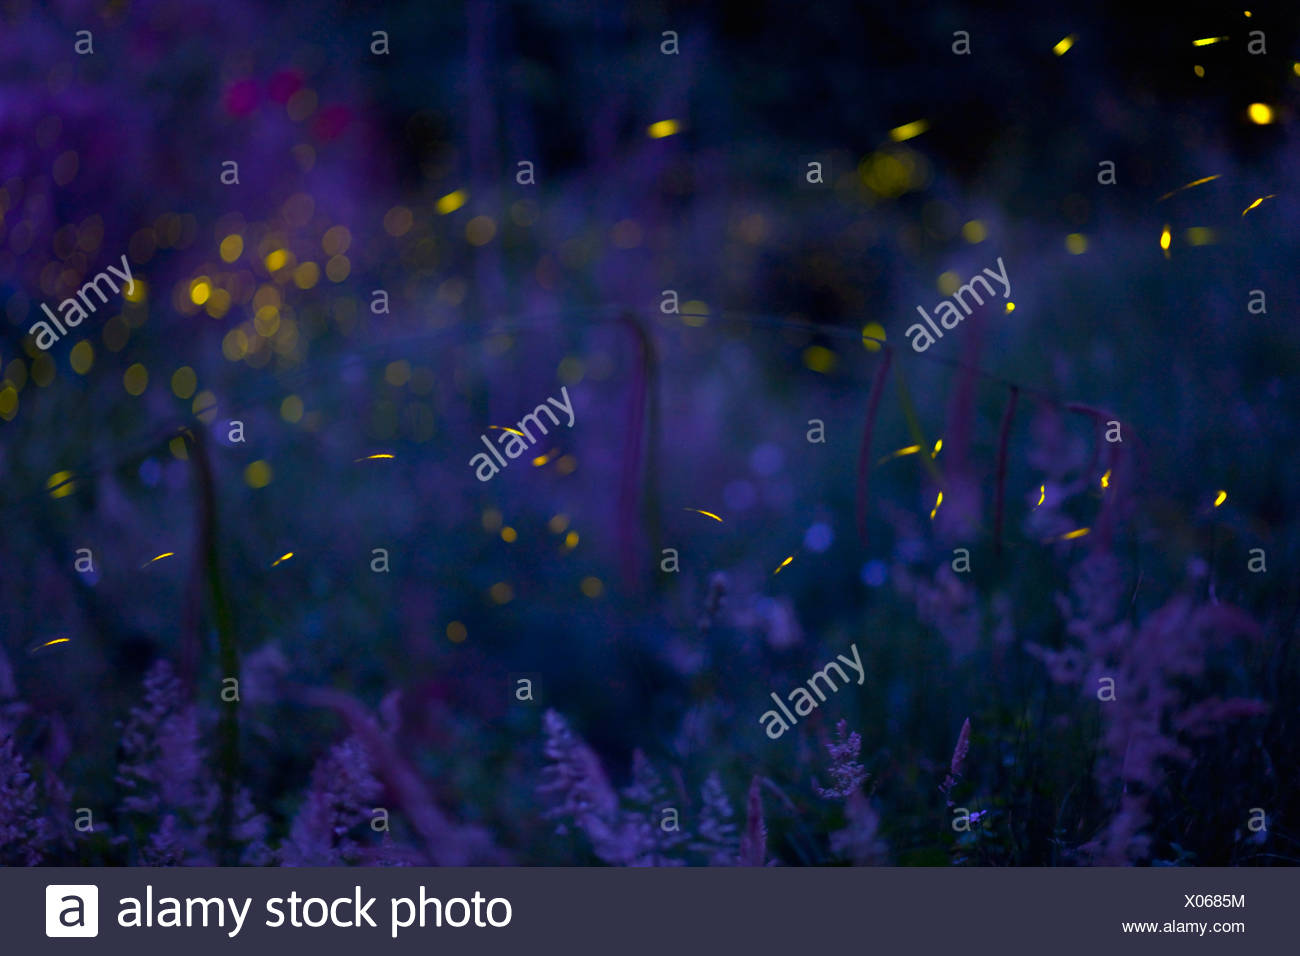 Italy, Tuscany, View of fireflies in meadow at night - Stock Image